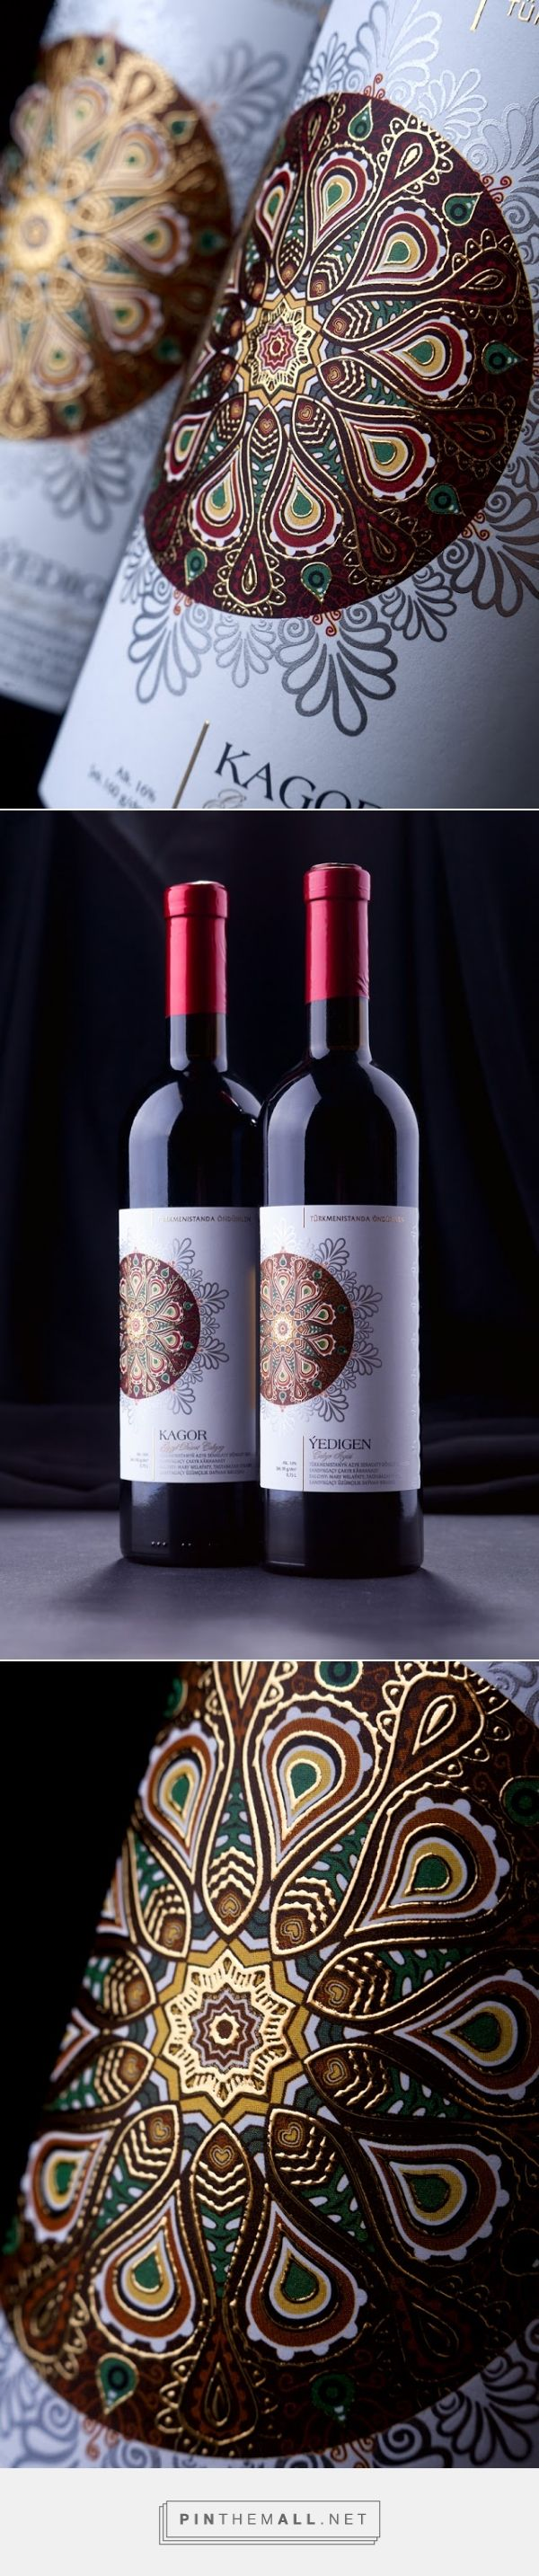 Turkmenistan ‪#‎Wines‬ ‪#‎packaging‬ designed by 43'oz - Design Studio - http://www.packagingoftheworld.com/2015/04/turkmenistan-wines.html